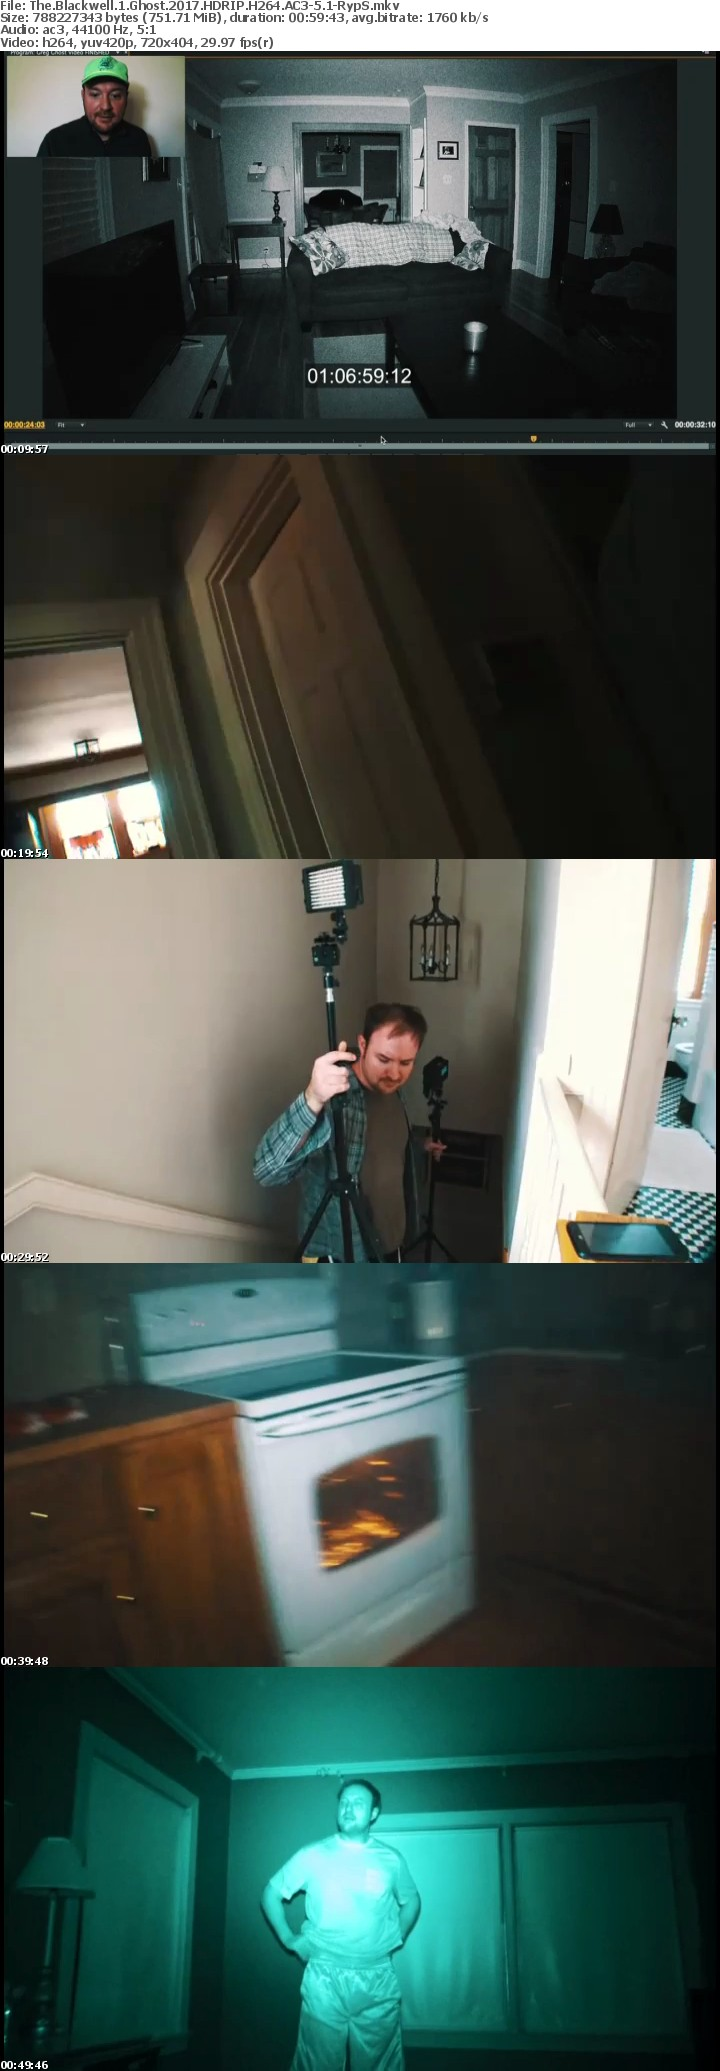 The Blackwell 1 Ghost 2017 HDRIP H264 AC3-5 1-RypS